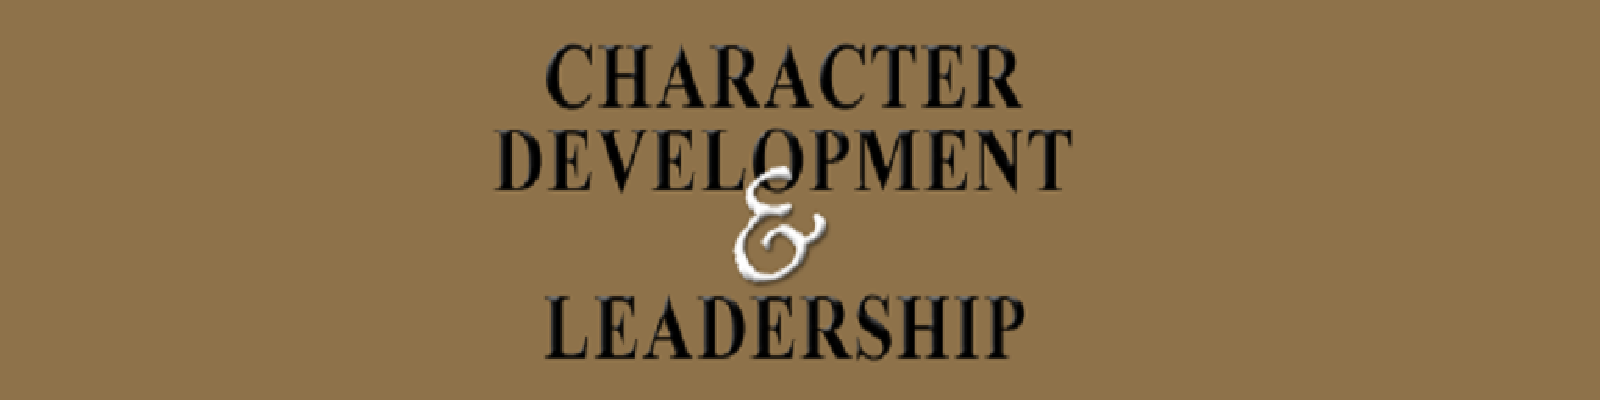 Character Development & Leadership